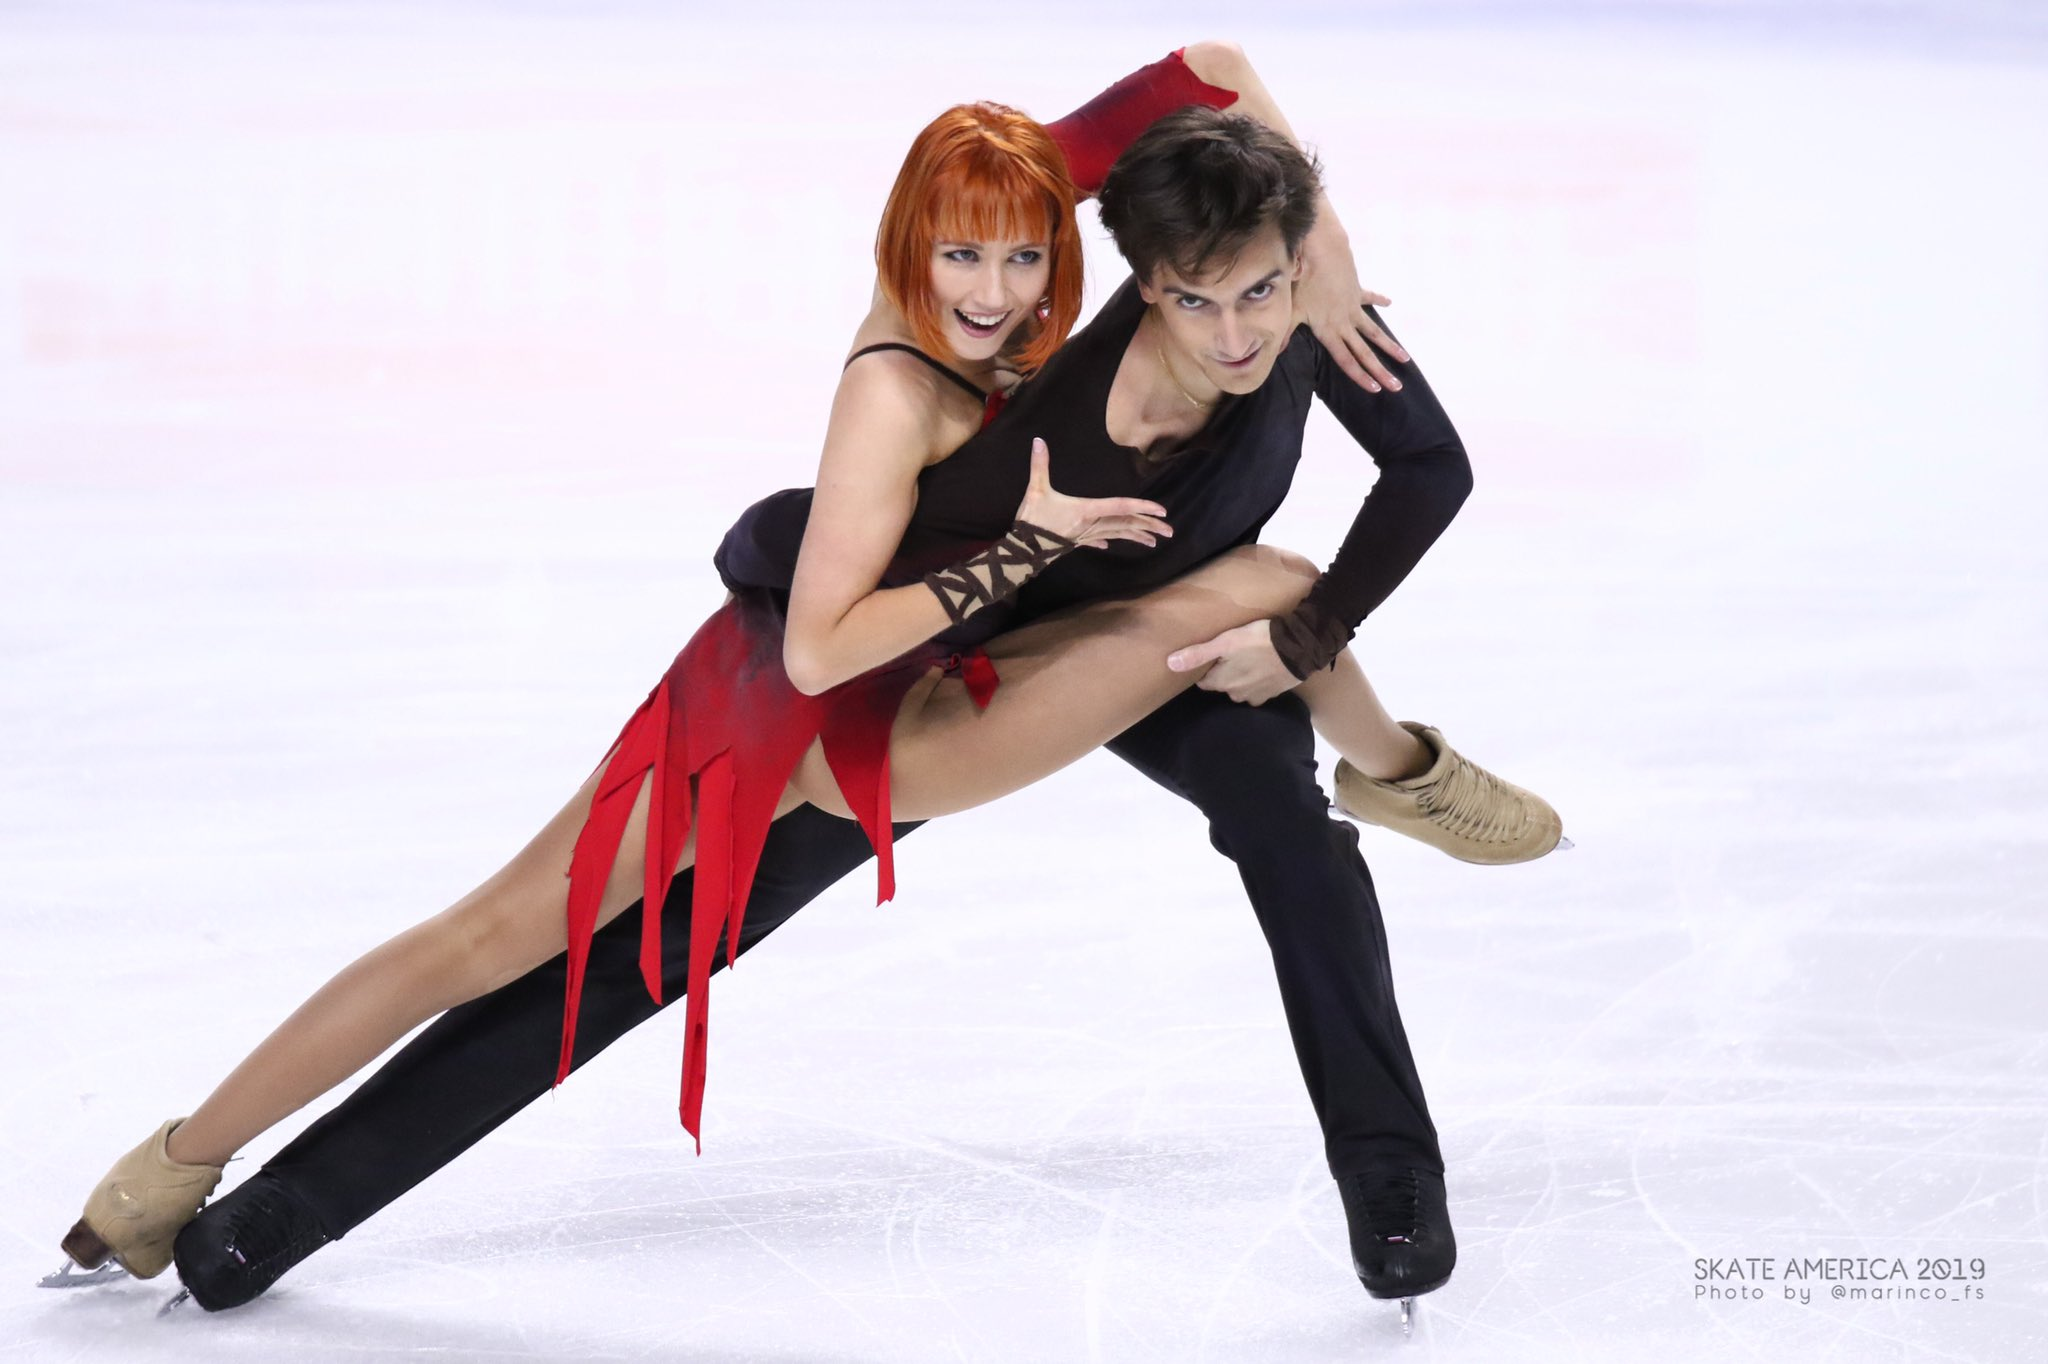 GP - 1 этап. Skate America Las Vegas, NV / USA October 18-20, 2019   - Страница 5 EHJP_HiUUAAlHDM?format=jpg&name=4096x4096